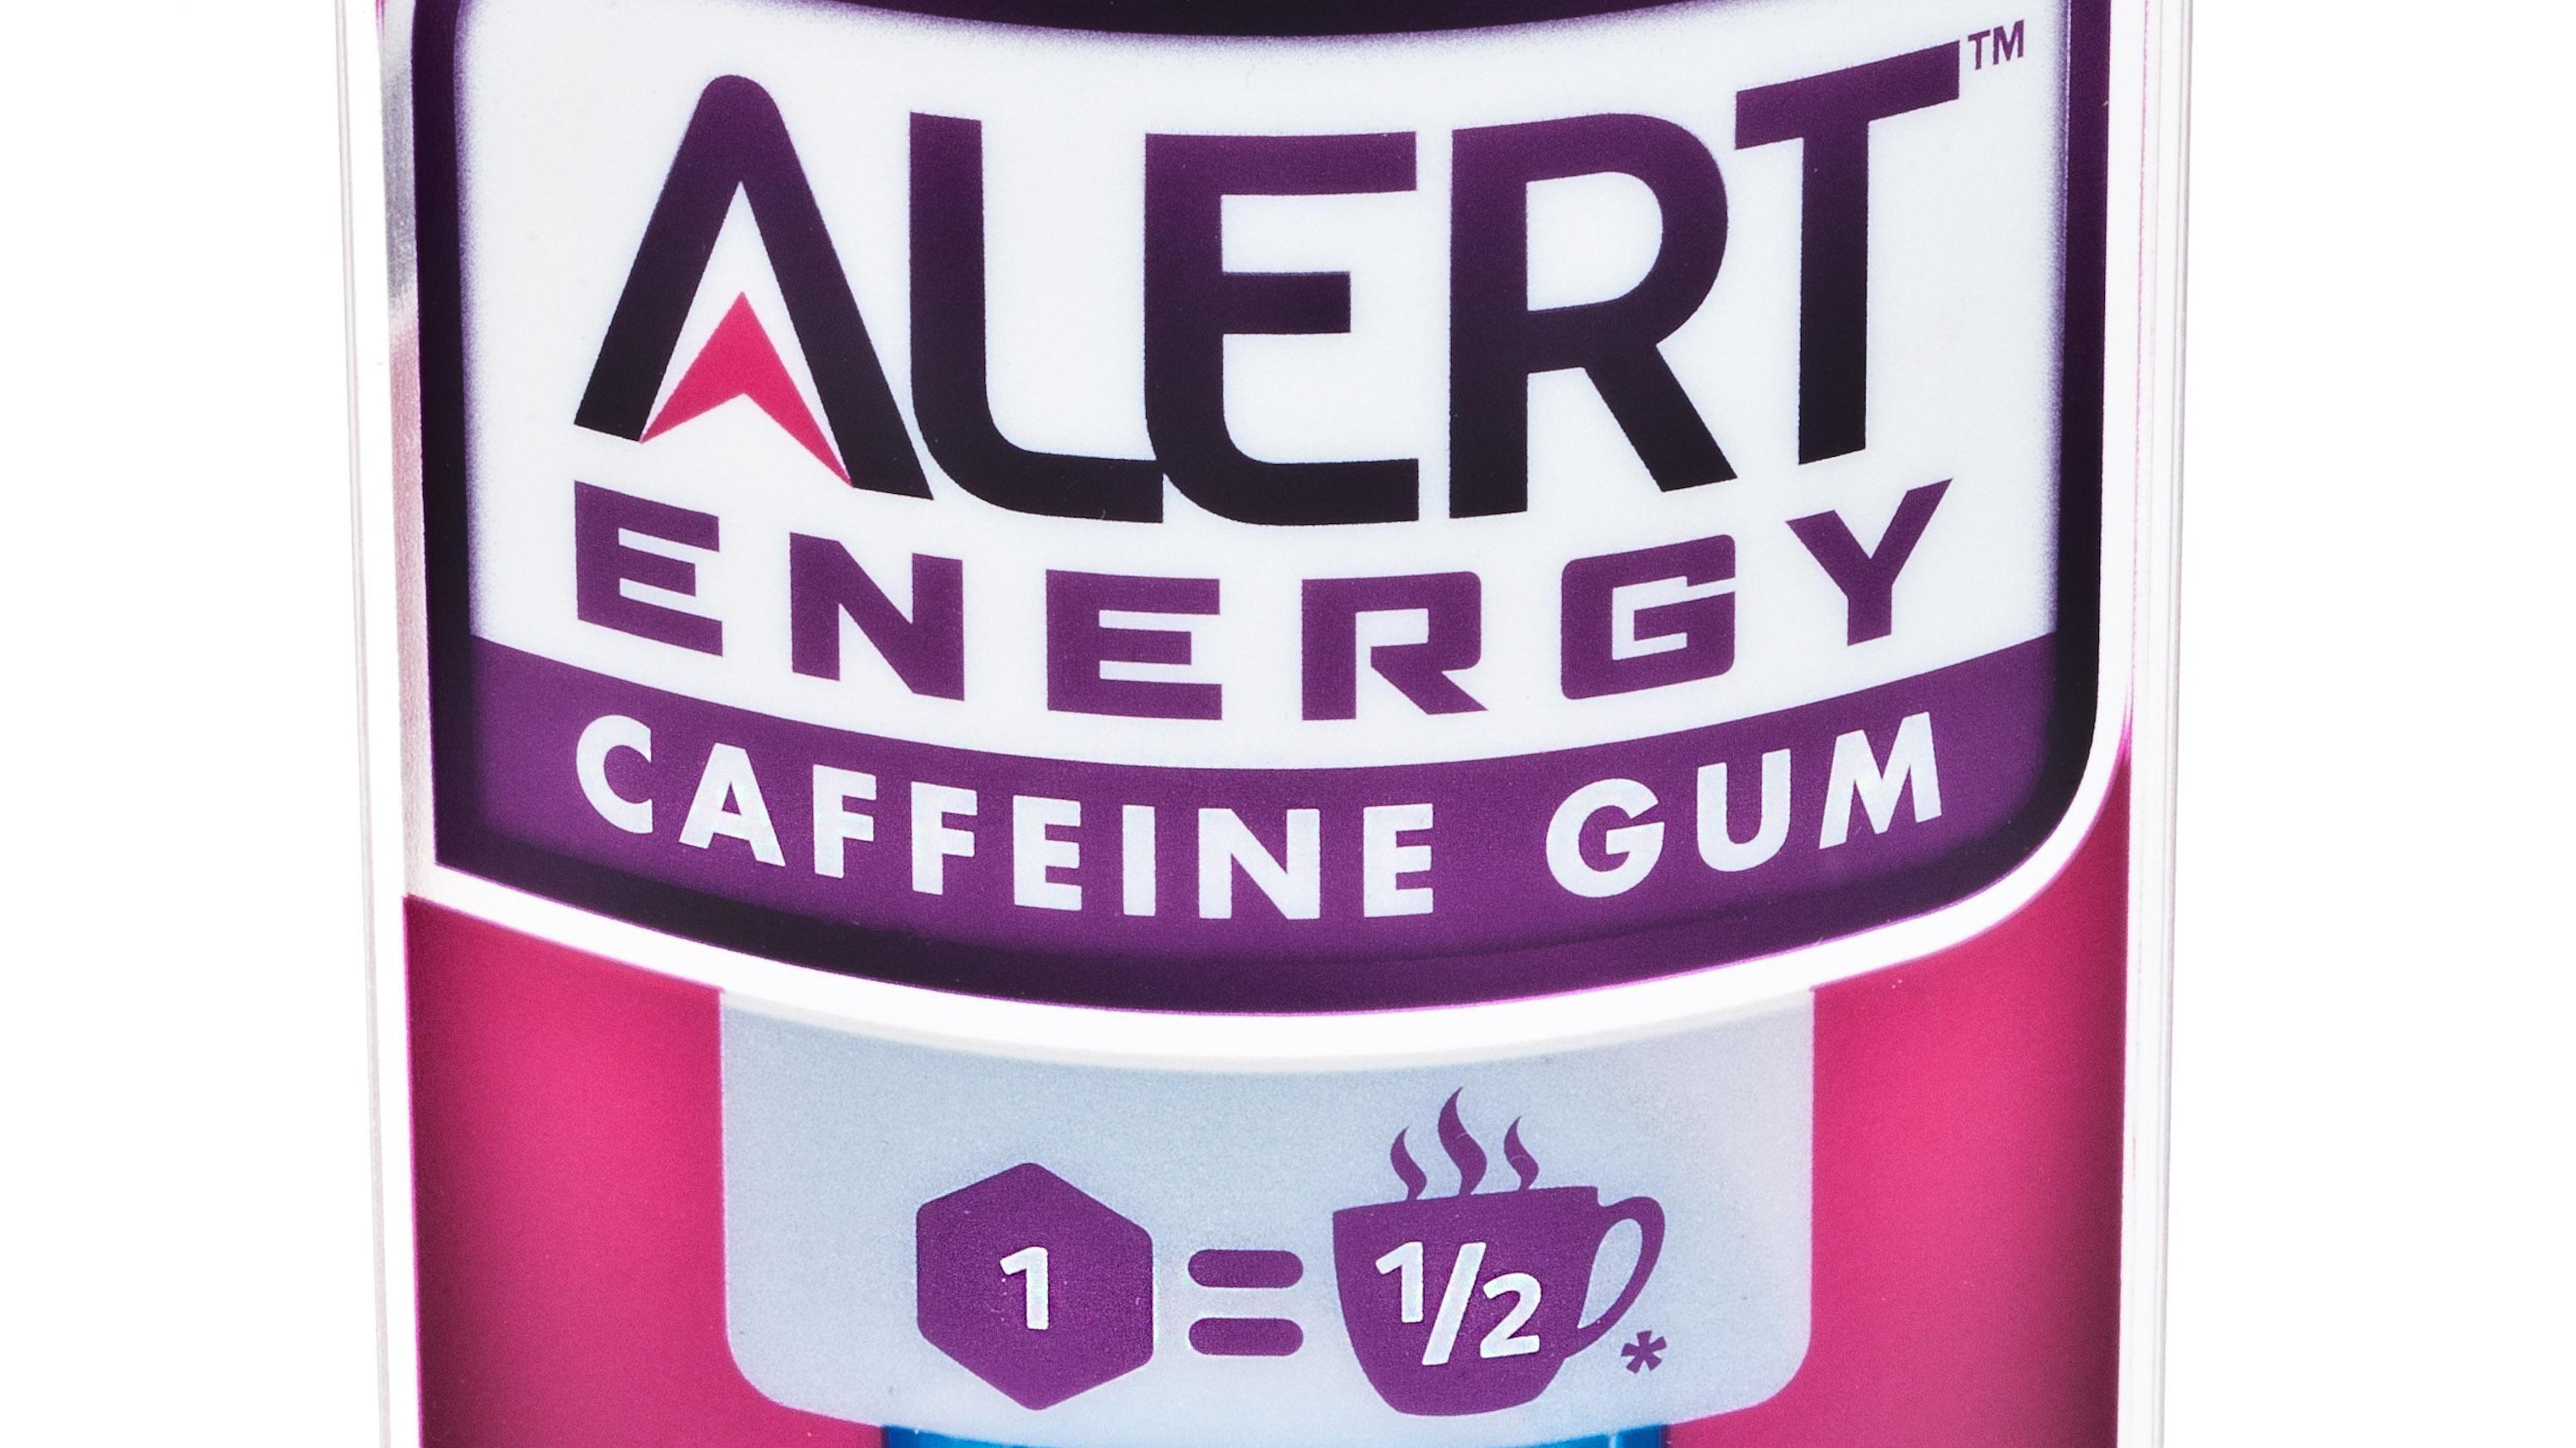 fda and caffeine The us food and drug administration says it is banning the sale of dietary supplements that contain high levels of concentrated or pure caffeine in bulk quantities direct to consumers after at least two deaths of otherwise healthy individuals.